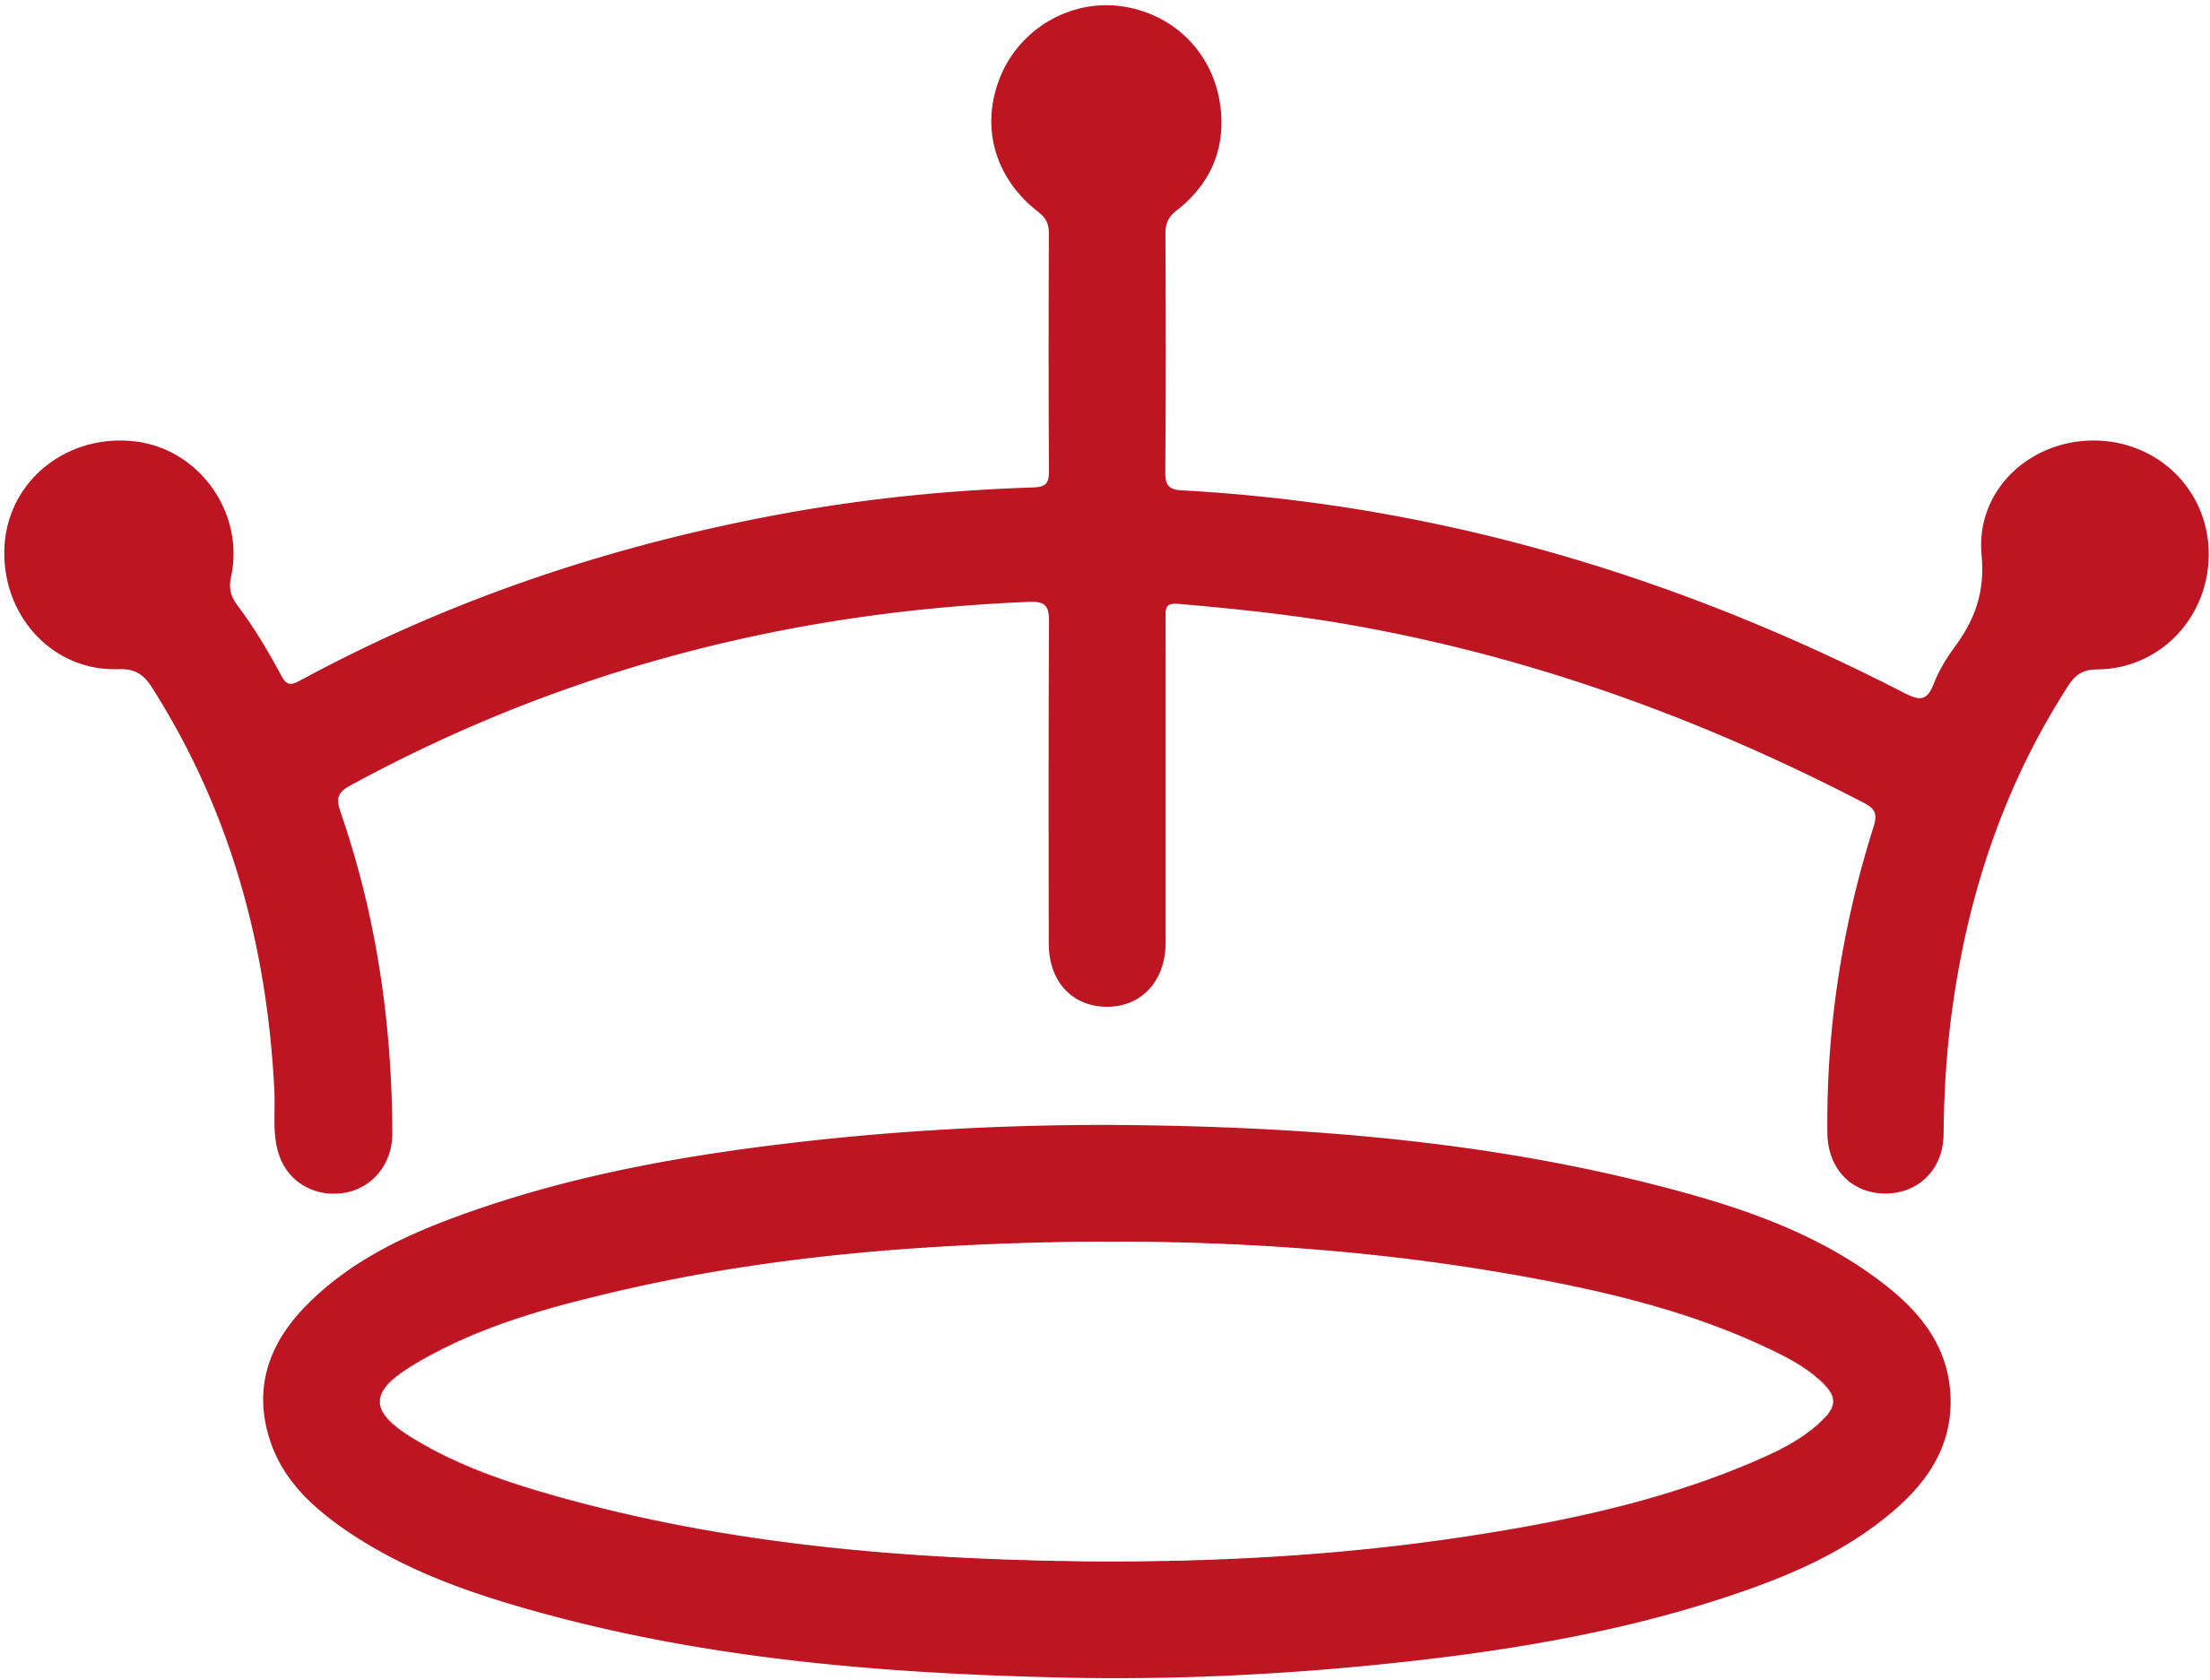 Ah_logo_-_red_crown